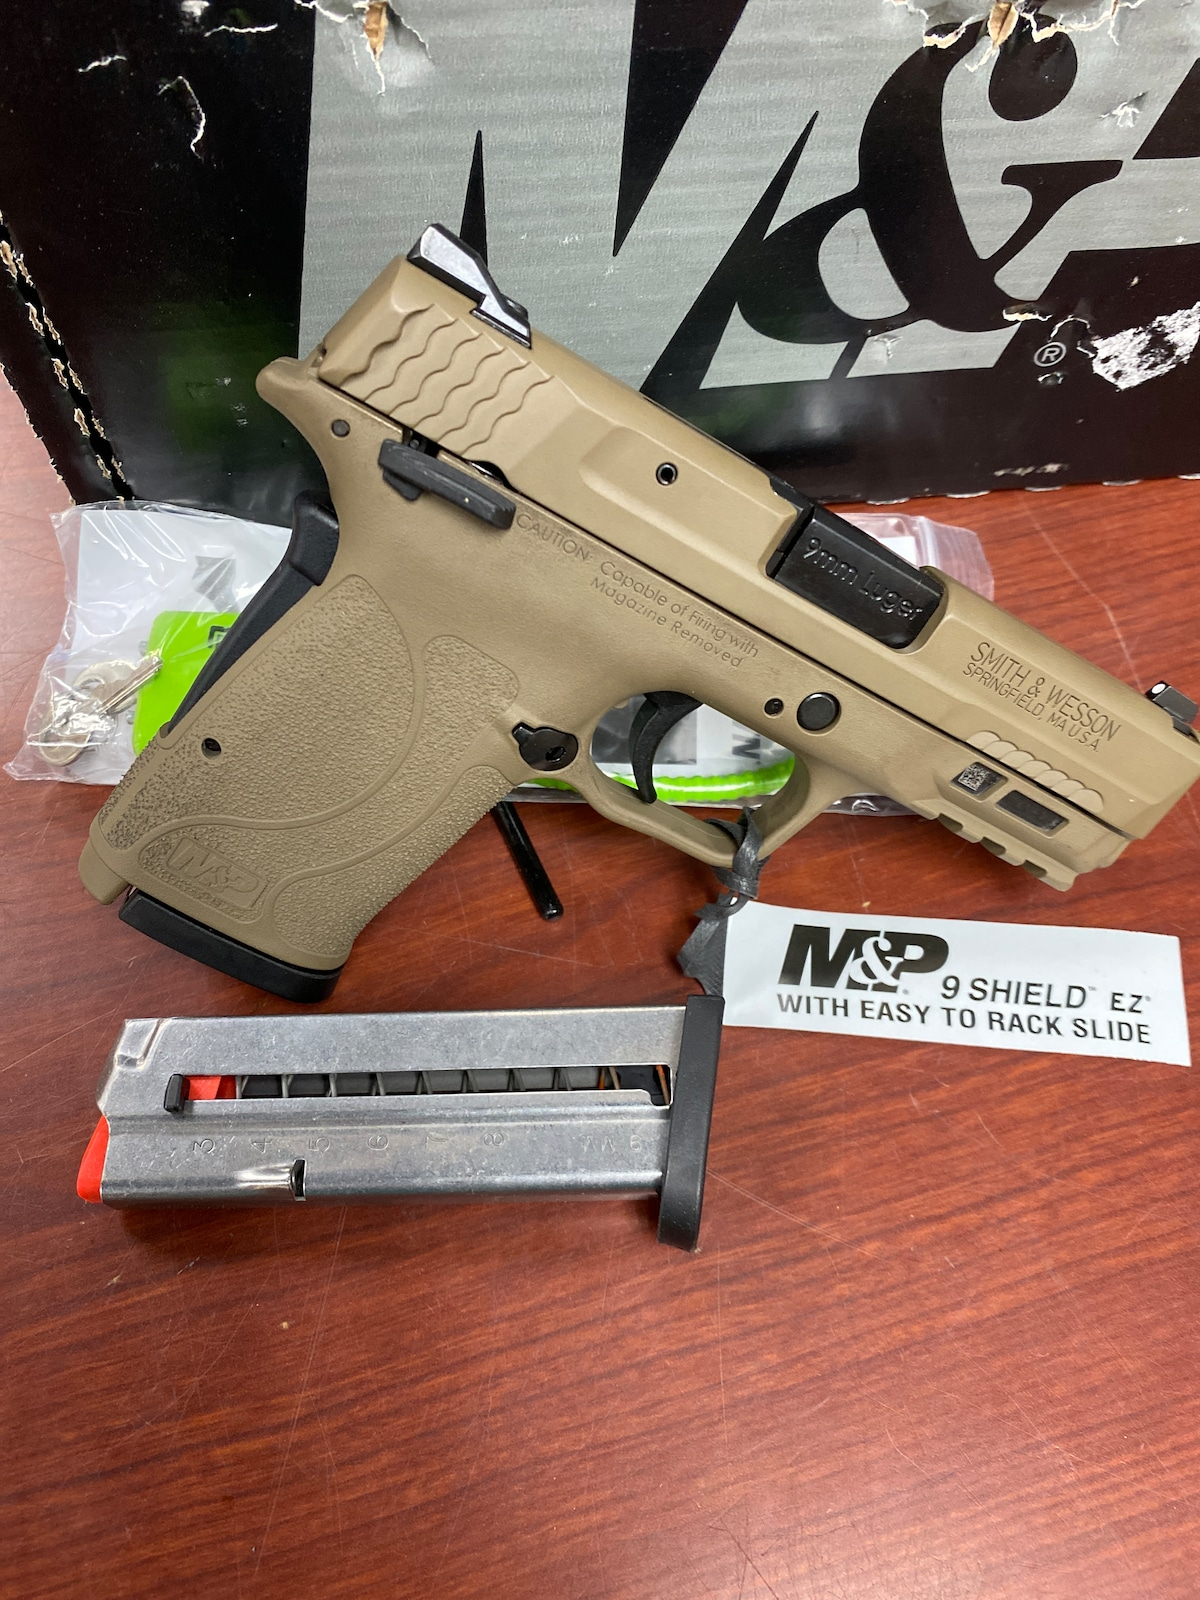 SMITH & WESSON m&p 9 shield ez 13314 fde with thumb safety